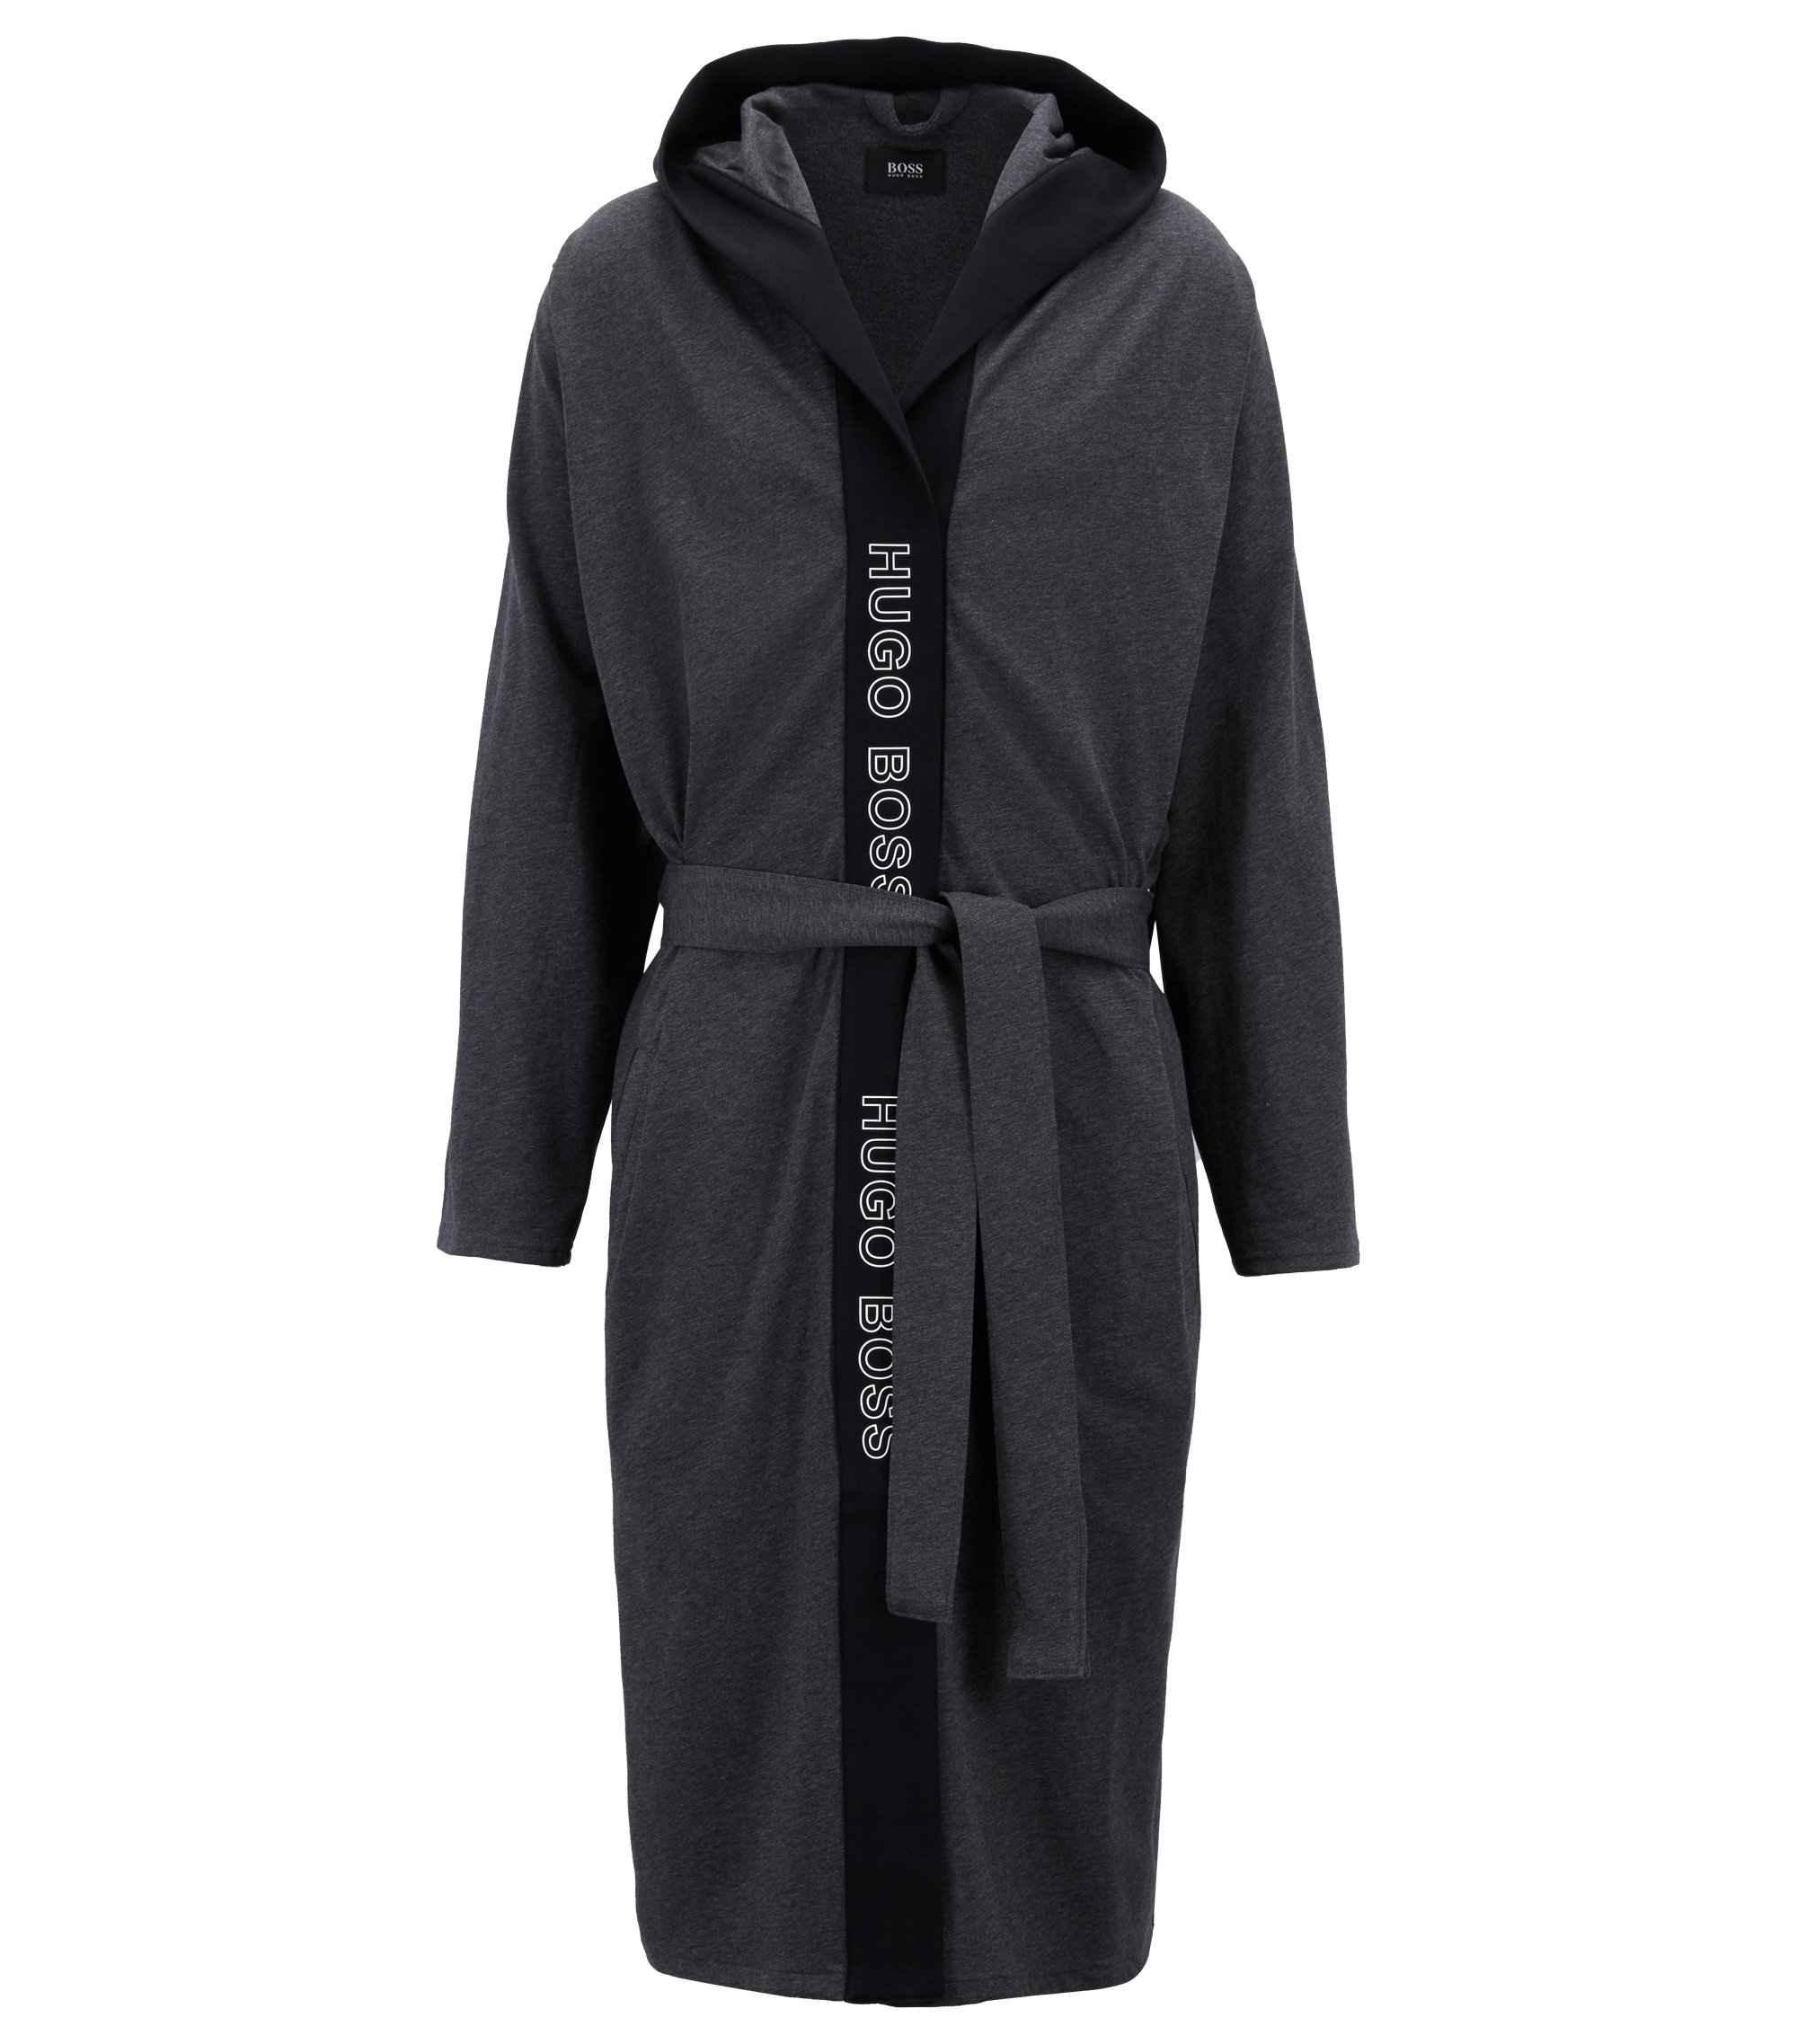 Hooded dressing gown in heavyweight jersey with logo-print trim, Grey